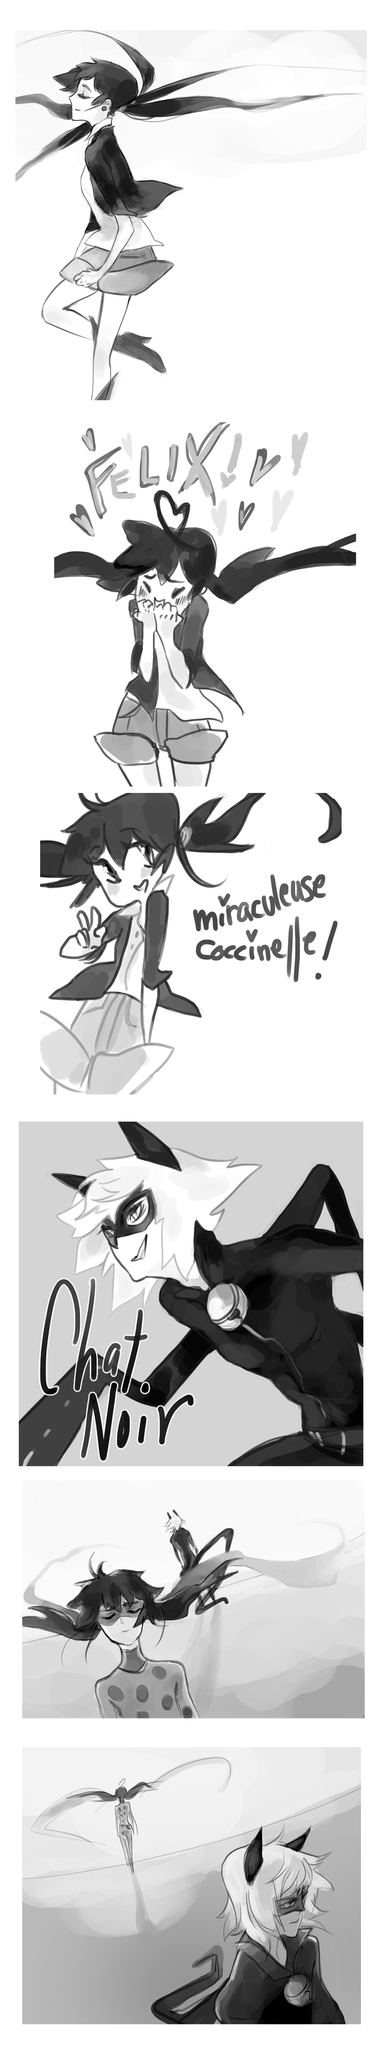 miraculous ladybug sketchdump by GardenofSpice